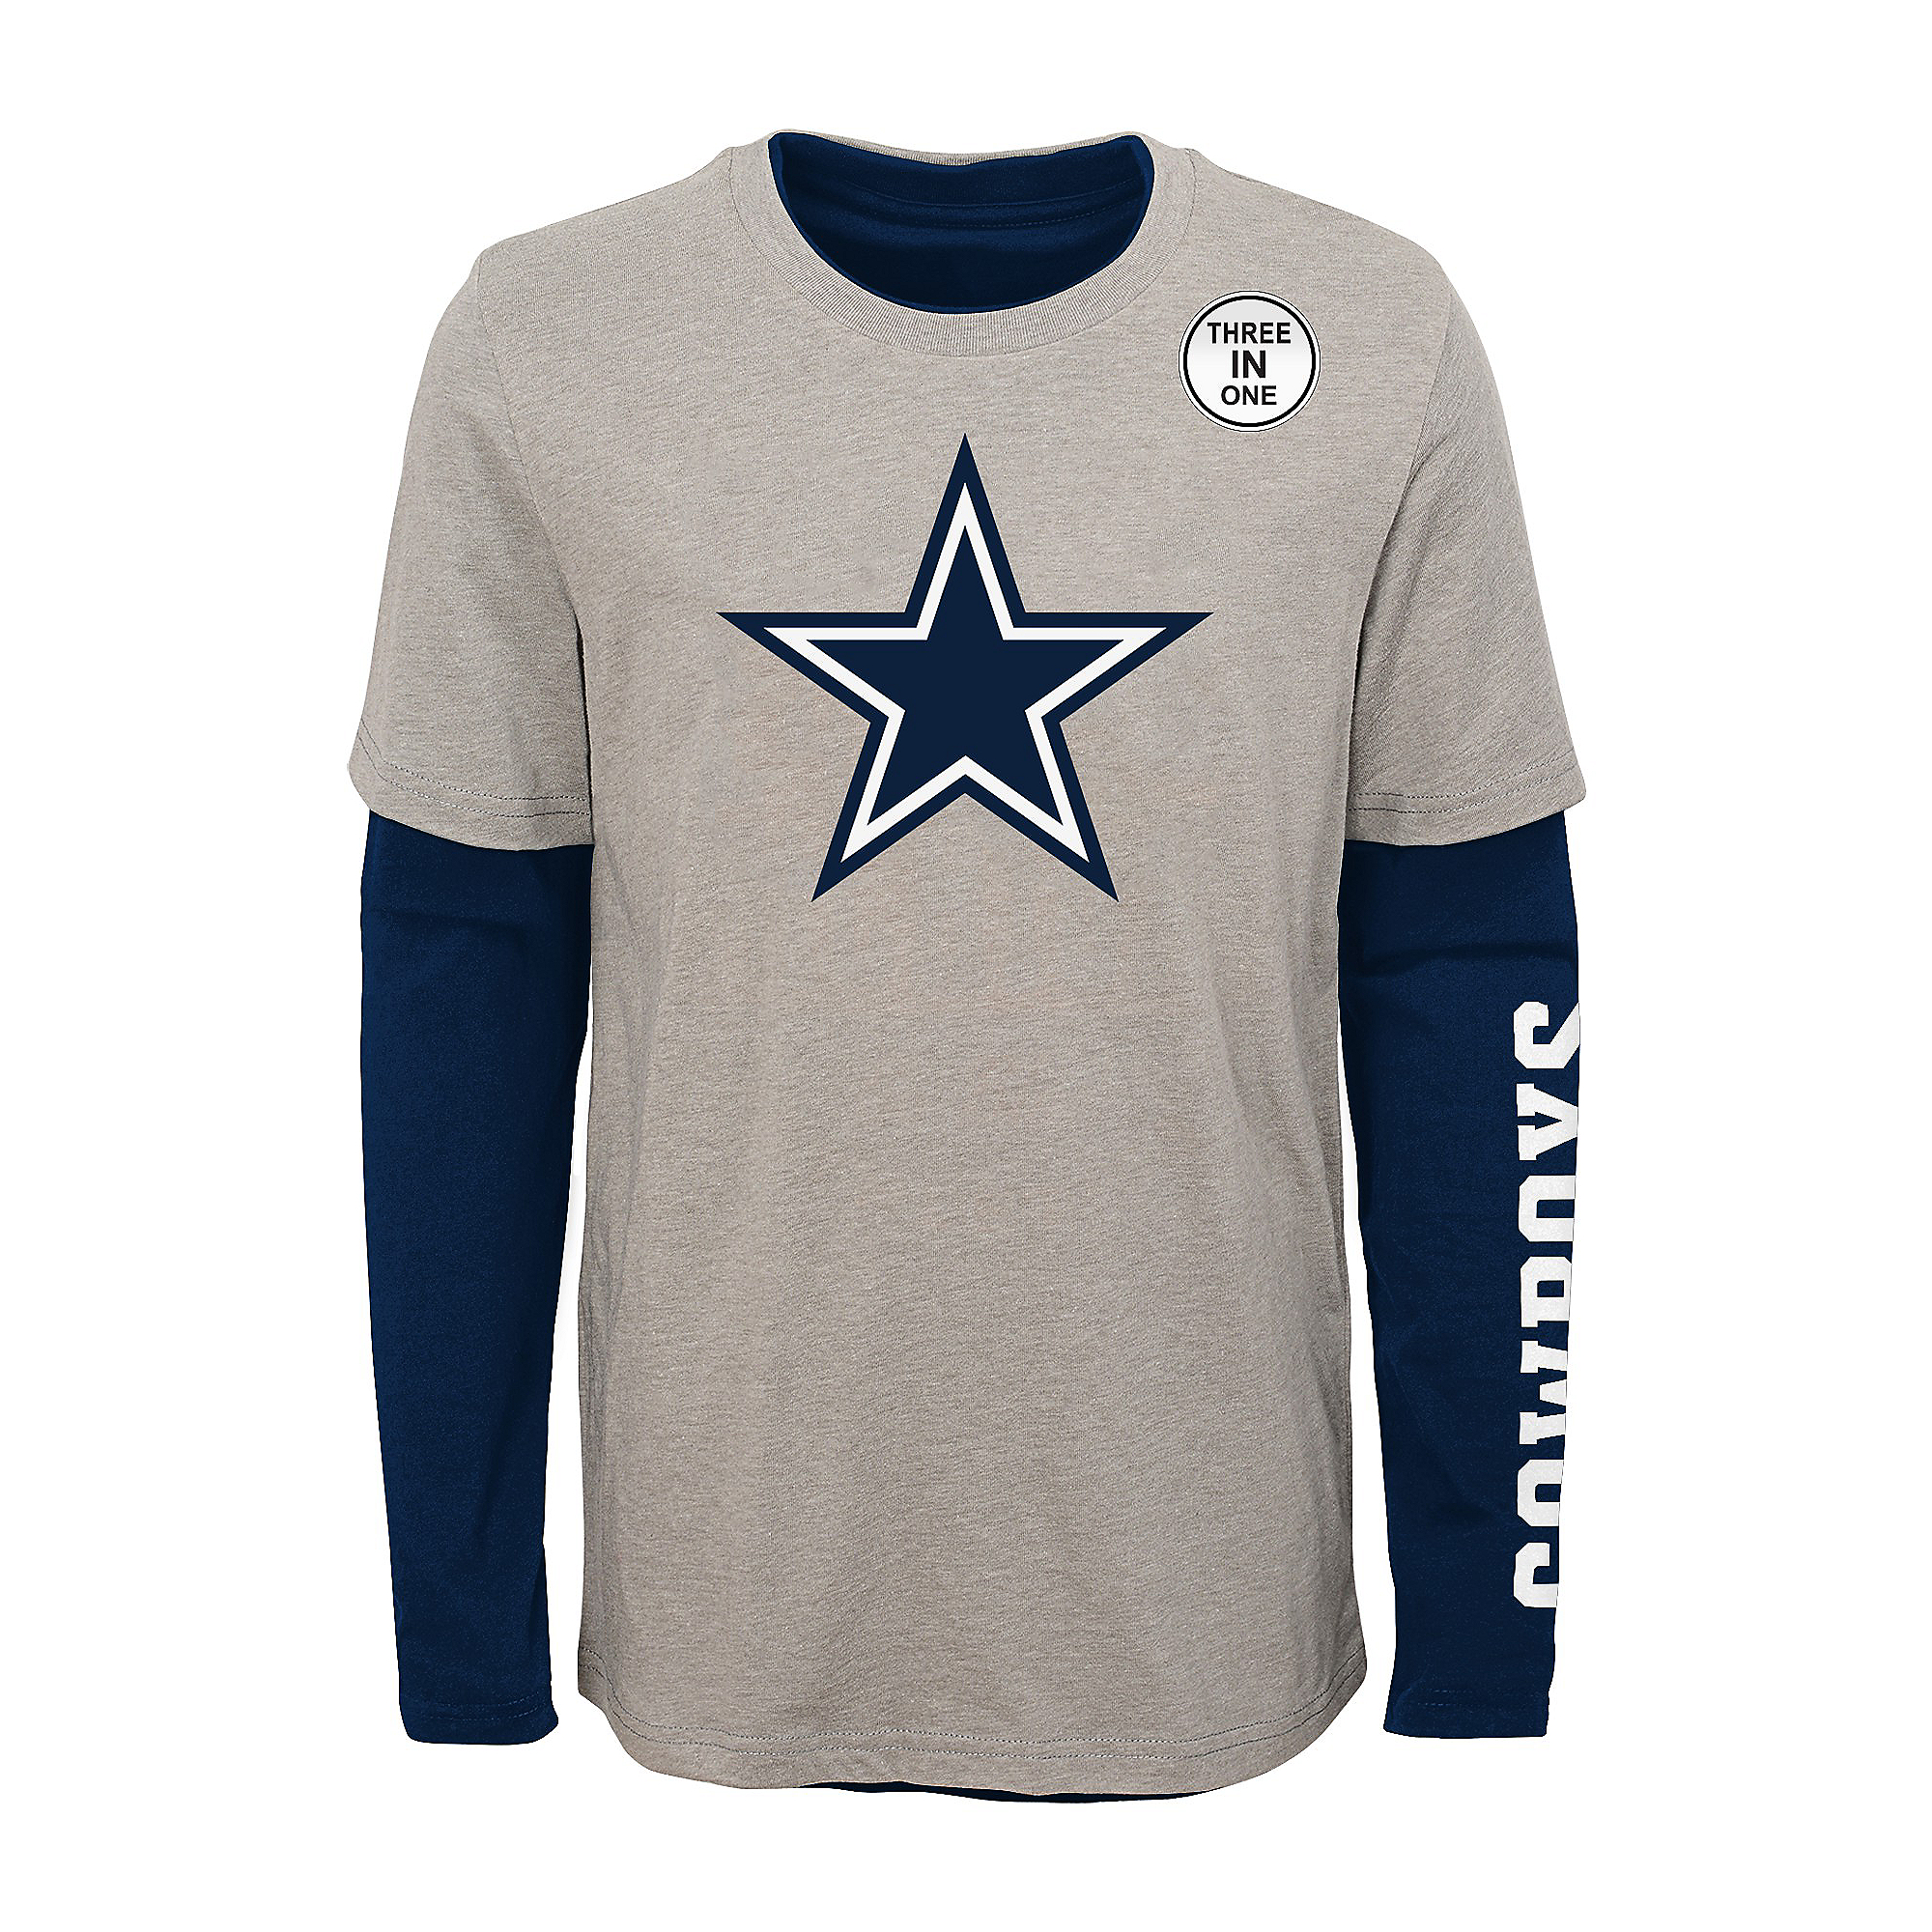 Dallas Cowboys Kids Goal Line Stated 3-in-1 Combo T-Shirt